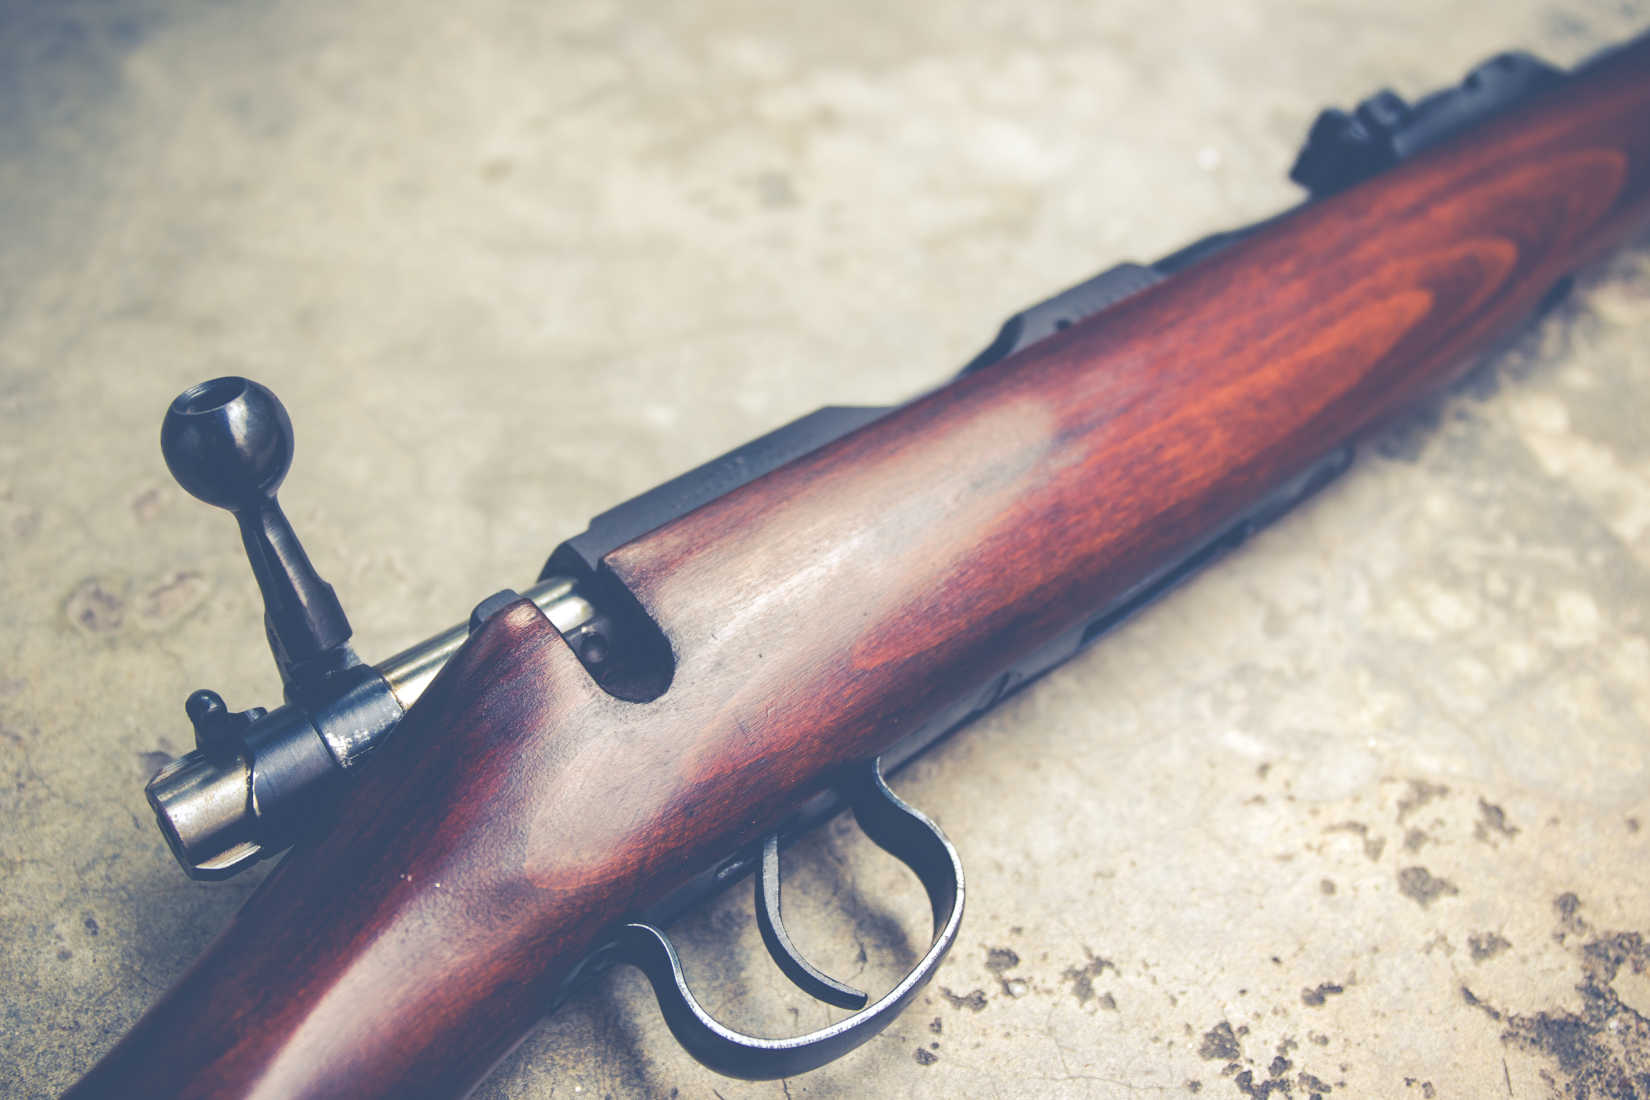 True Story: Two Tours in Vietnam and Still Too Young to Buy a .22 Rifle